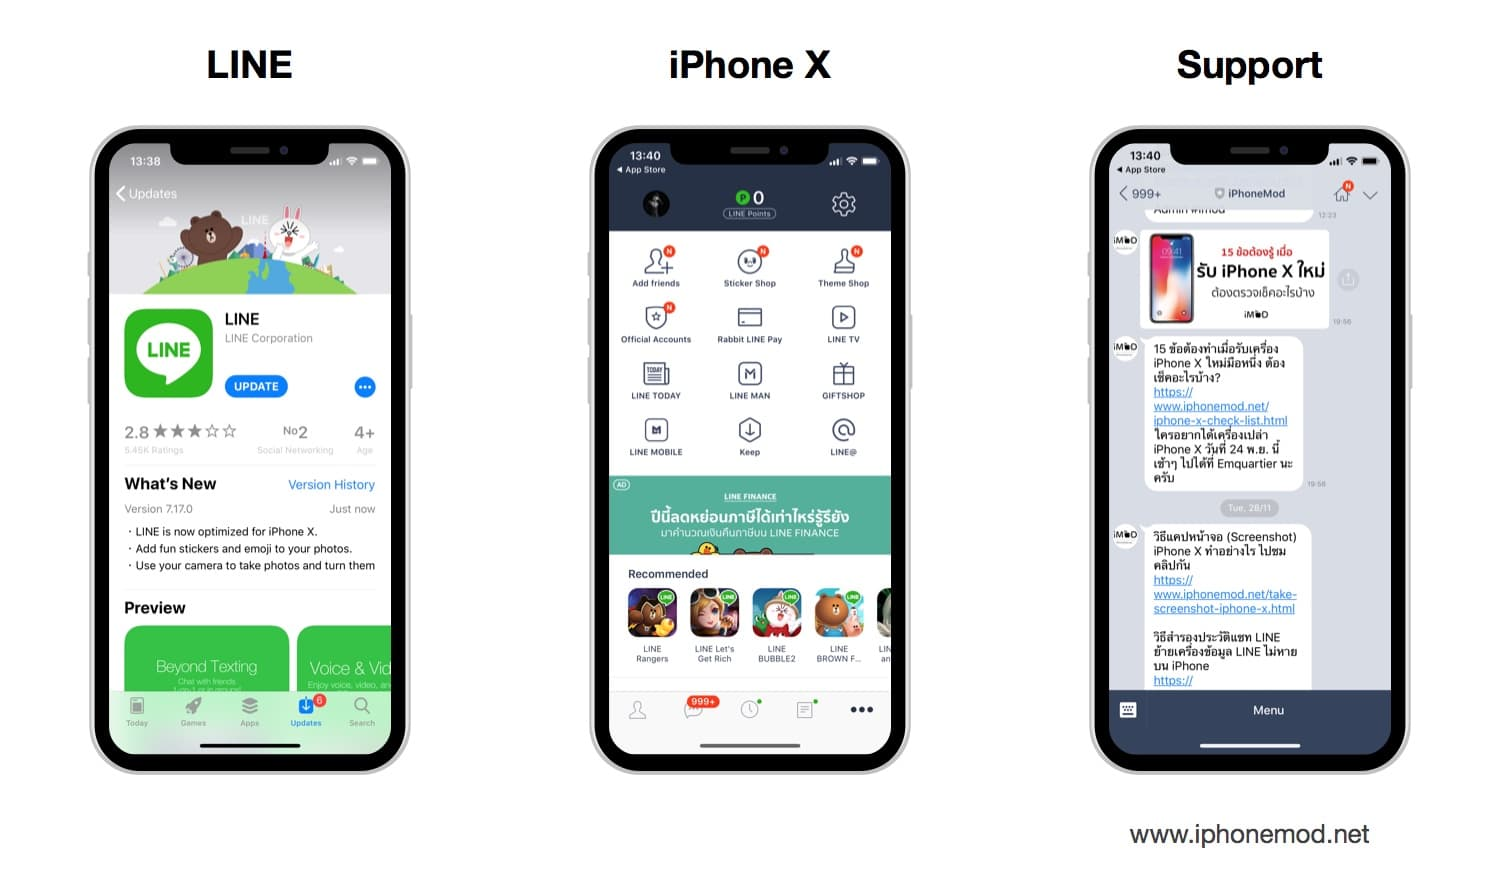 Line 7.17 Iphone X Support